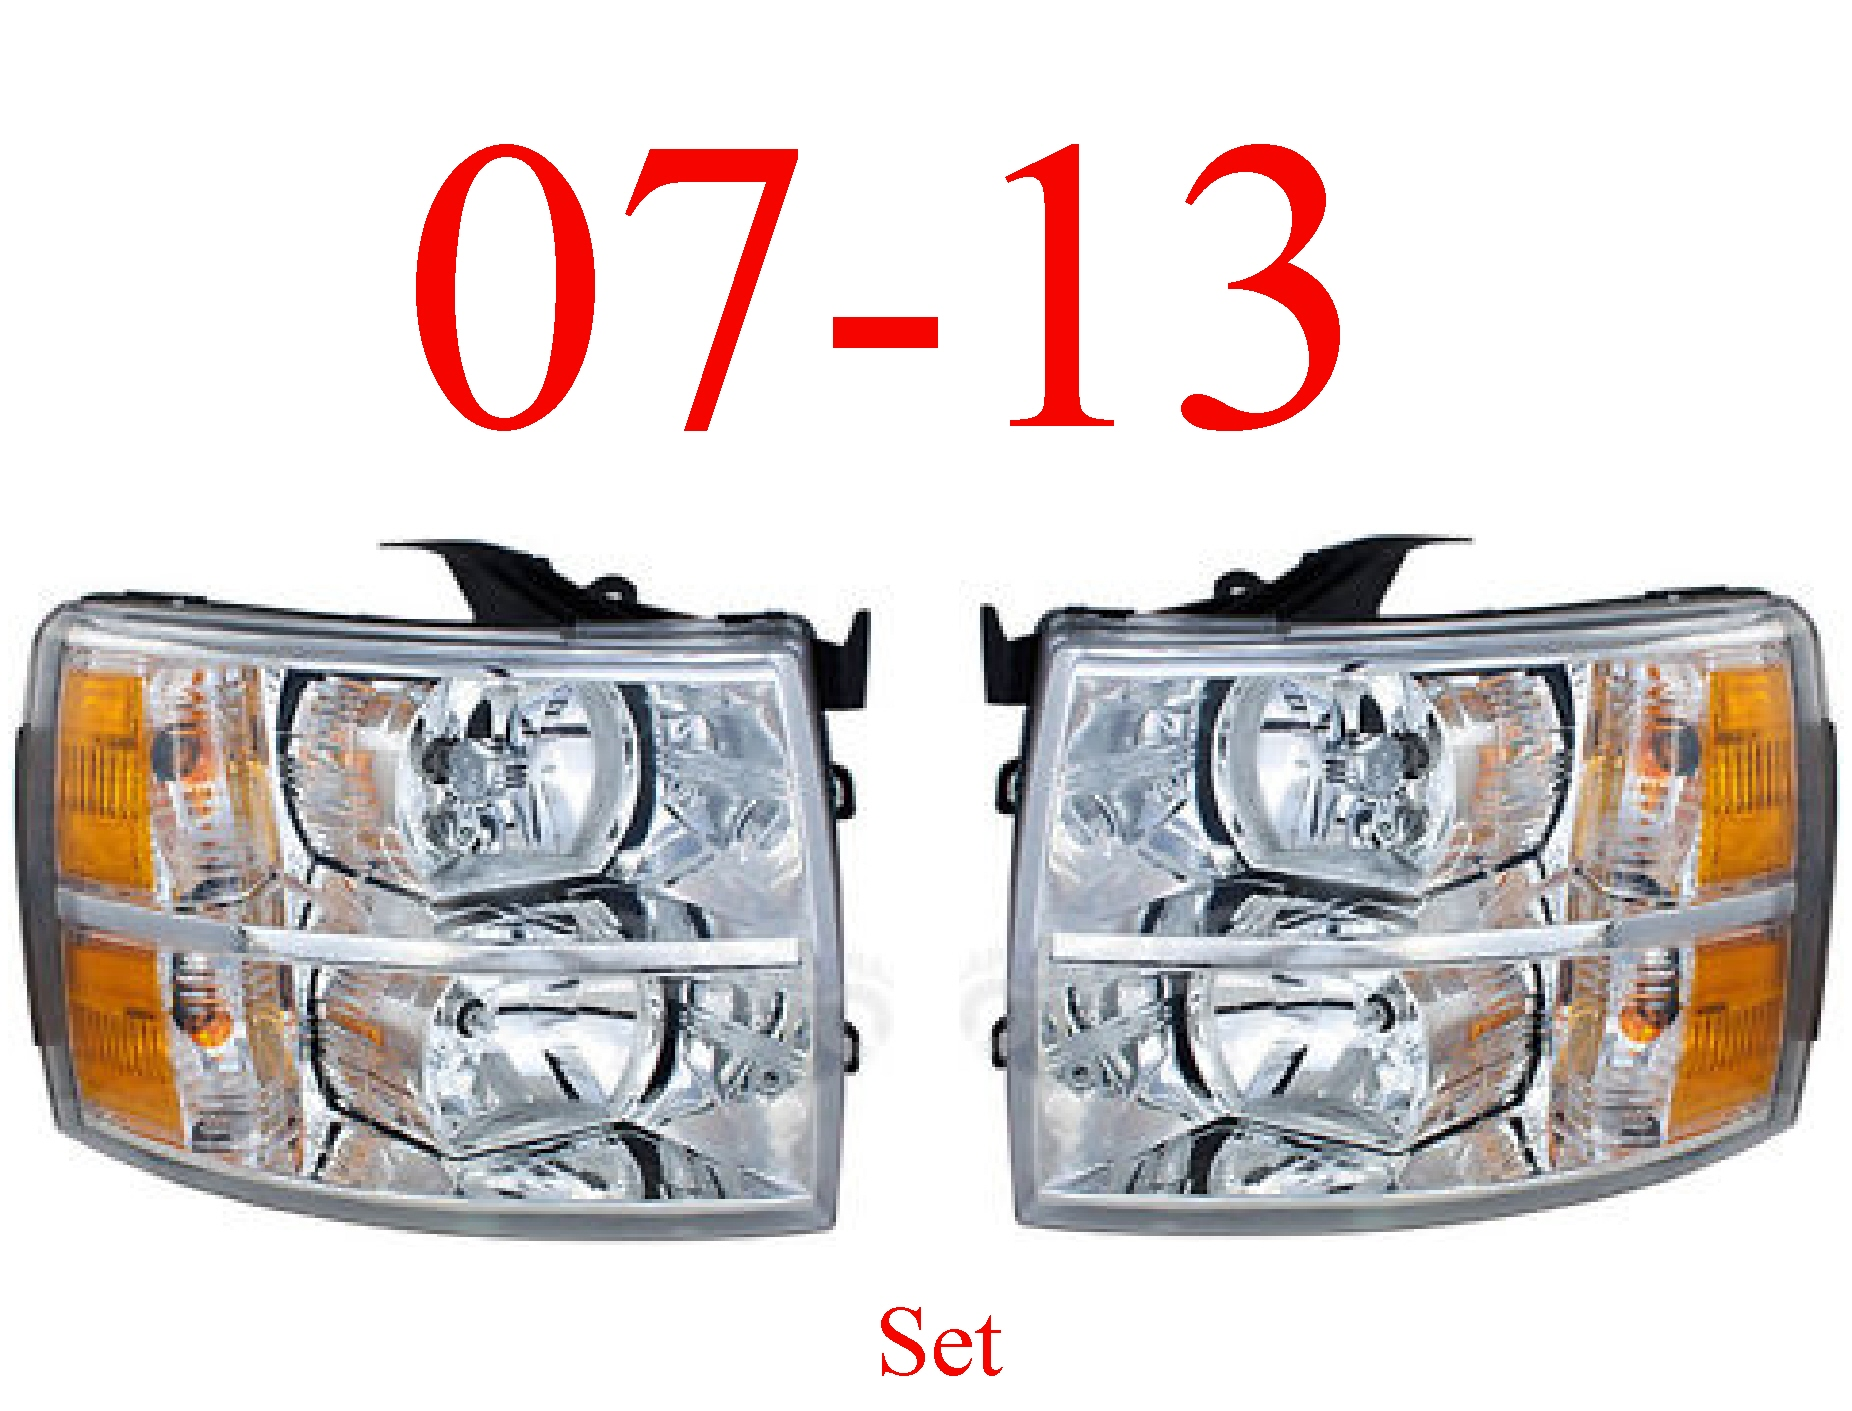 07-13 Chevy Head Light Set L&R